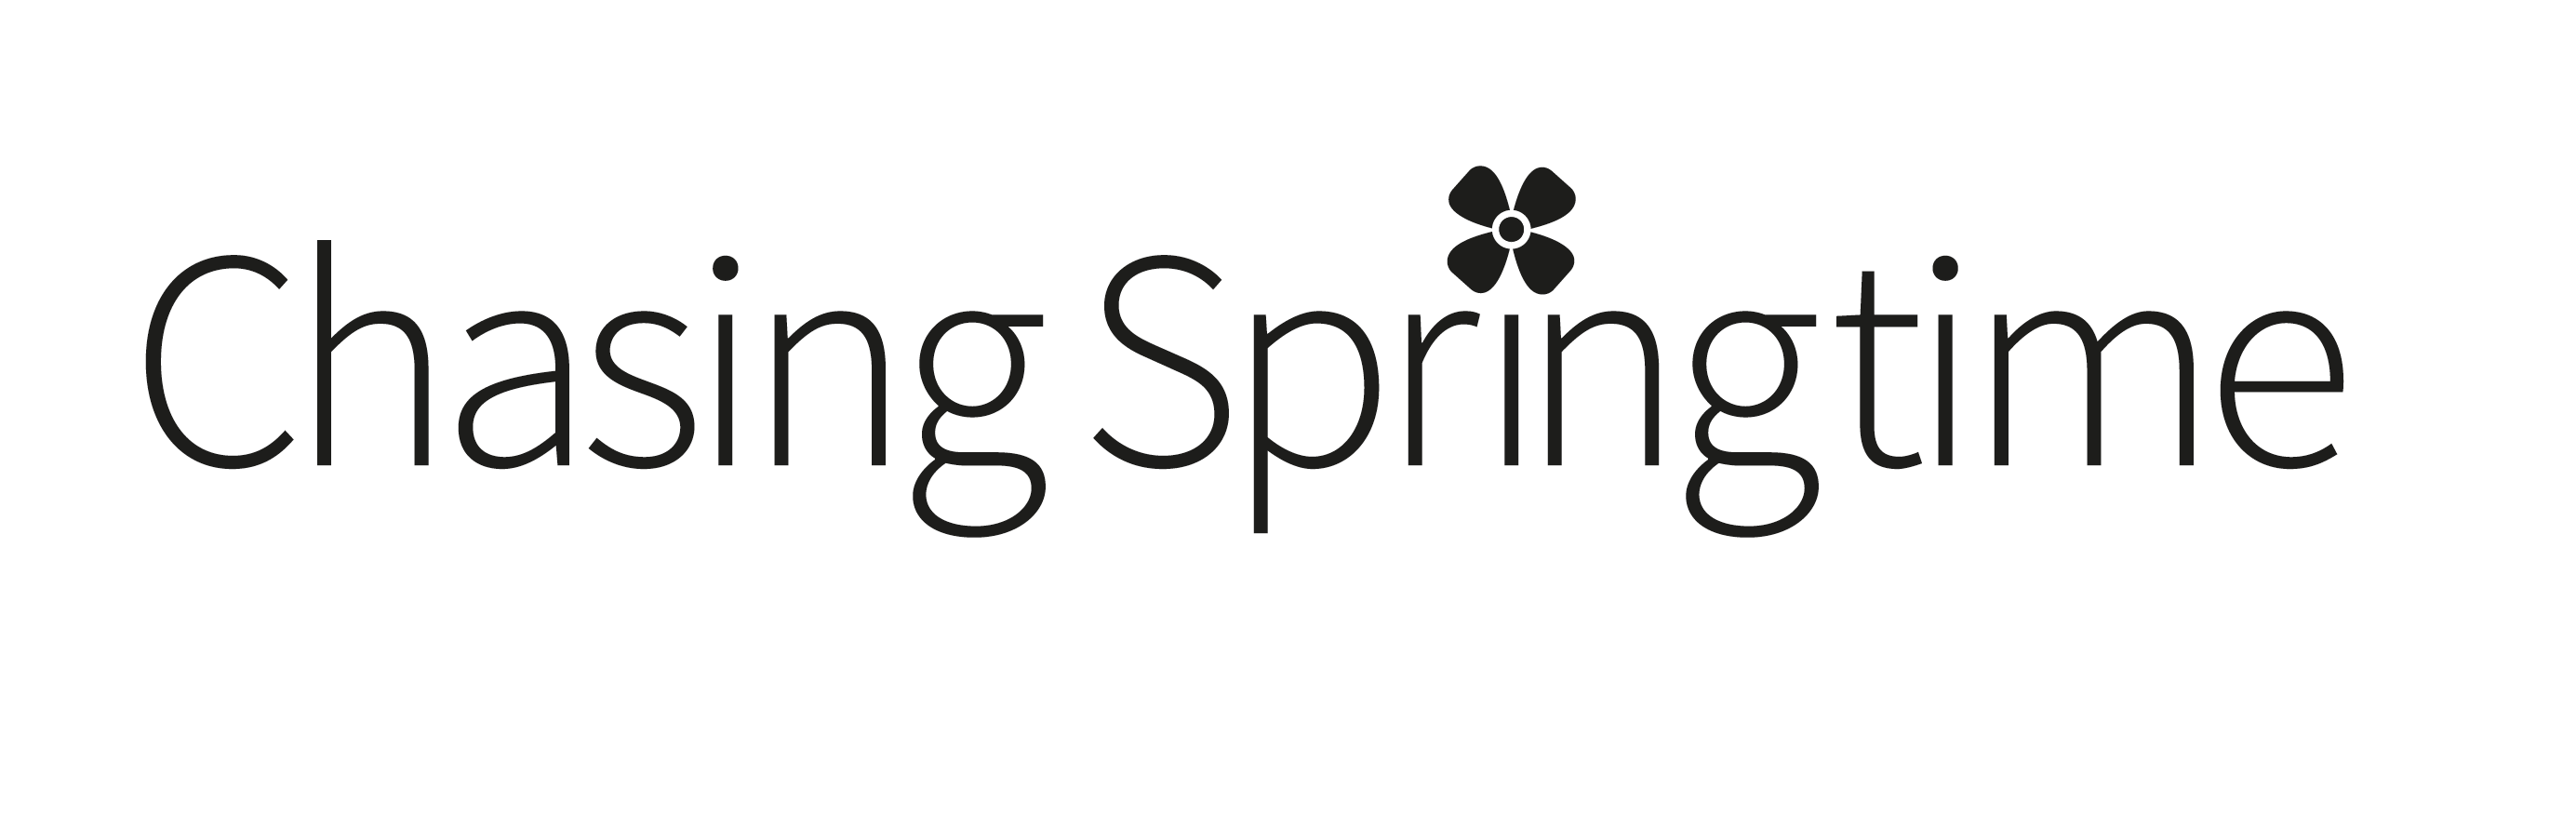 Logo for Chasing Springtime Online Women's Plus Size Clothing Store